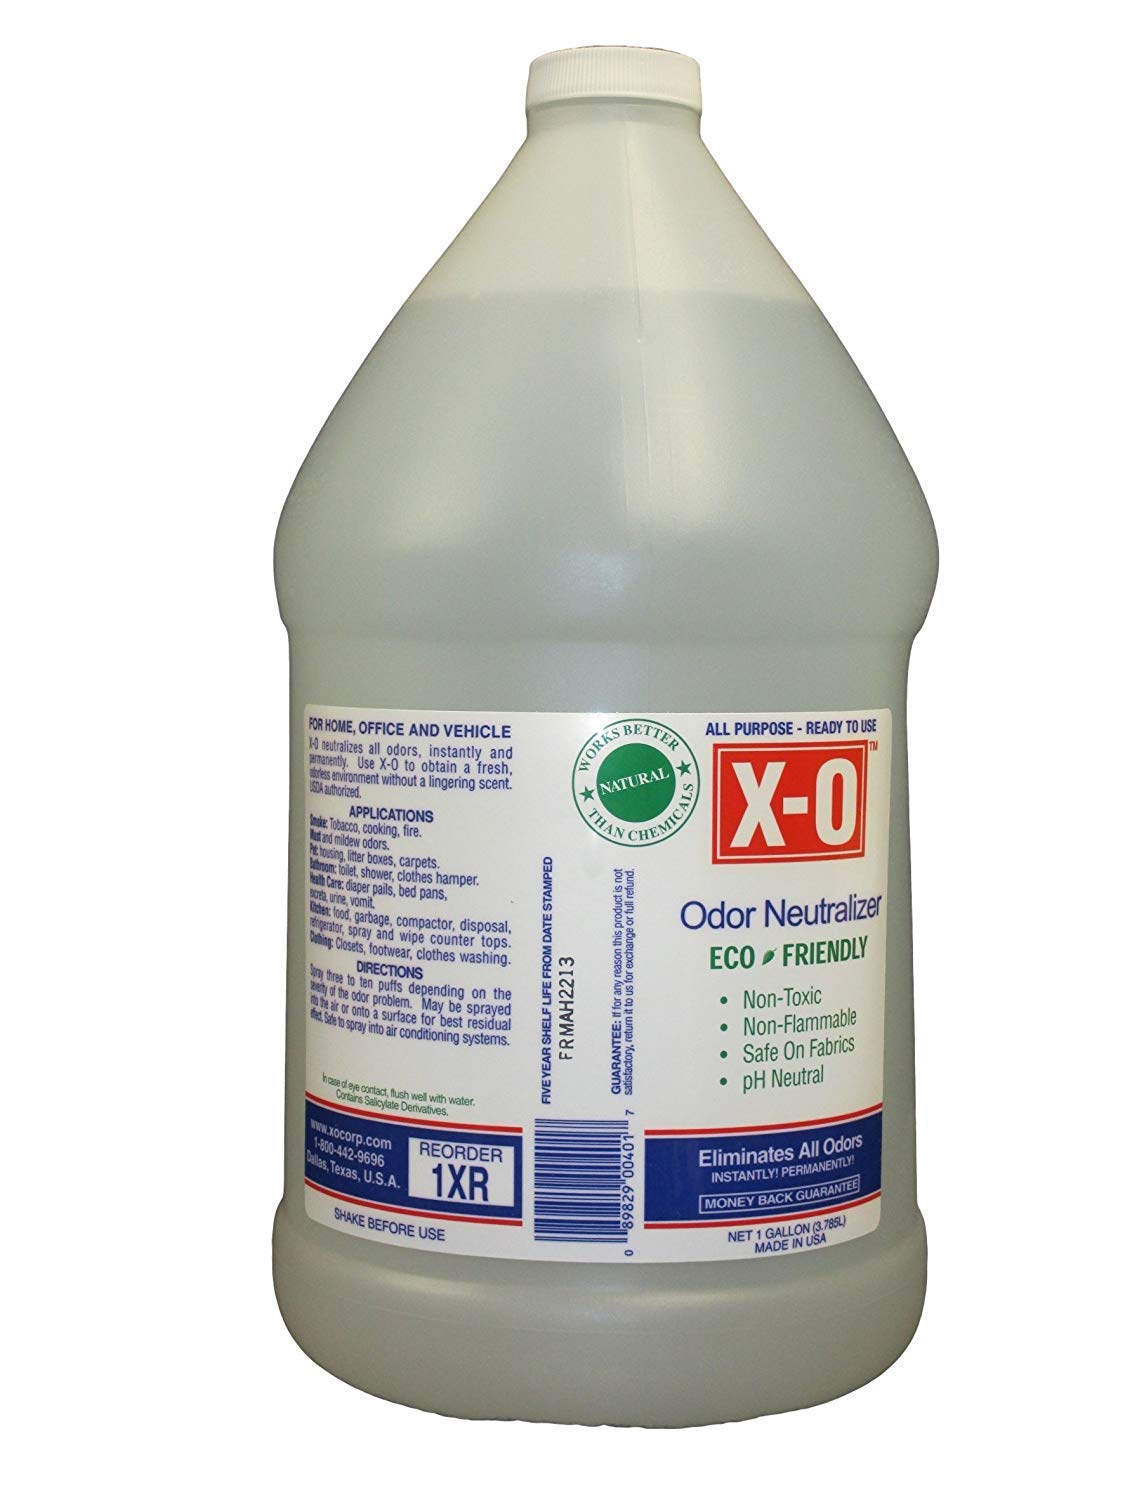 XO Plus Odor Neutralizer/Cleaner Concentrated (32oz, 1gallon, 5gallons) - All-Natural Odor Neutralizer Deodorizer, 1-Gallon, Clear by X-O